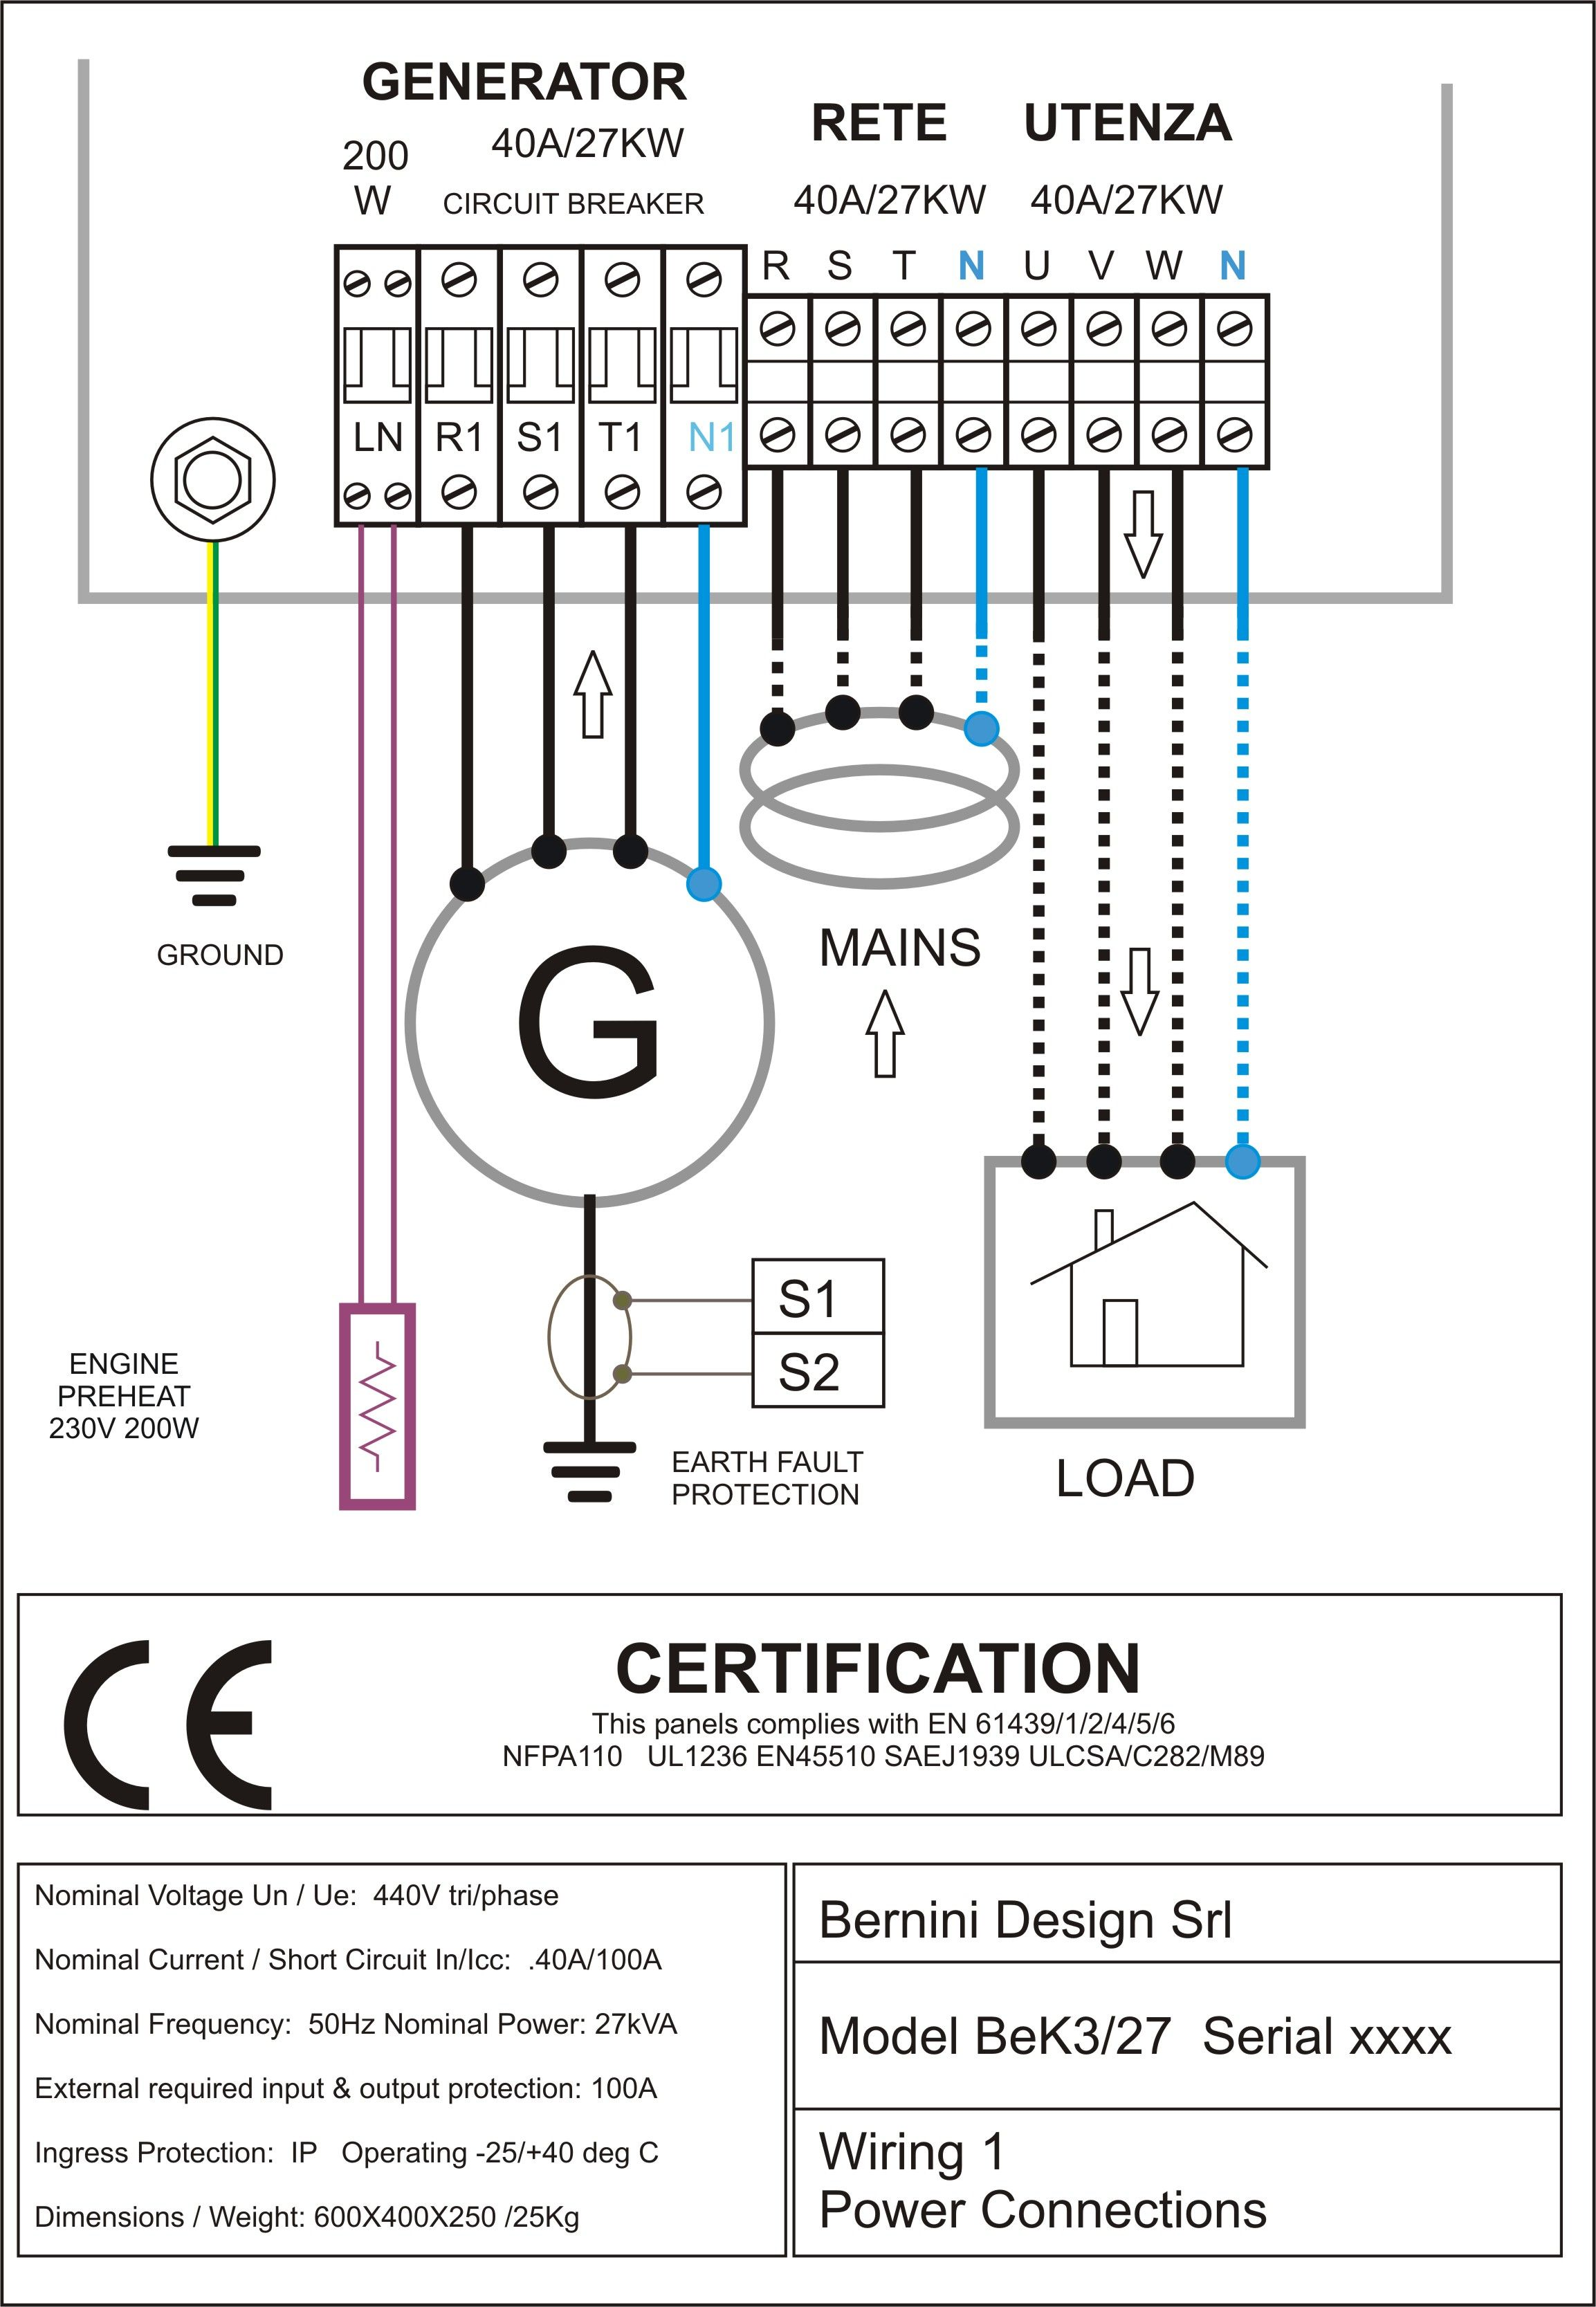 e789bca93f9142d48250ddc66668a81d diesel generator control panel wiring diagram gr pinterest controller wire diagram for 3246e2 lift at suagrazia.org